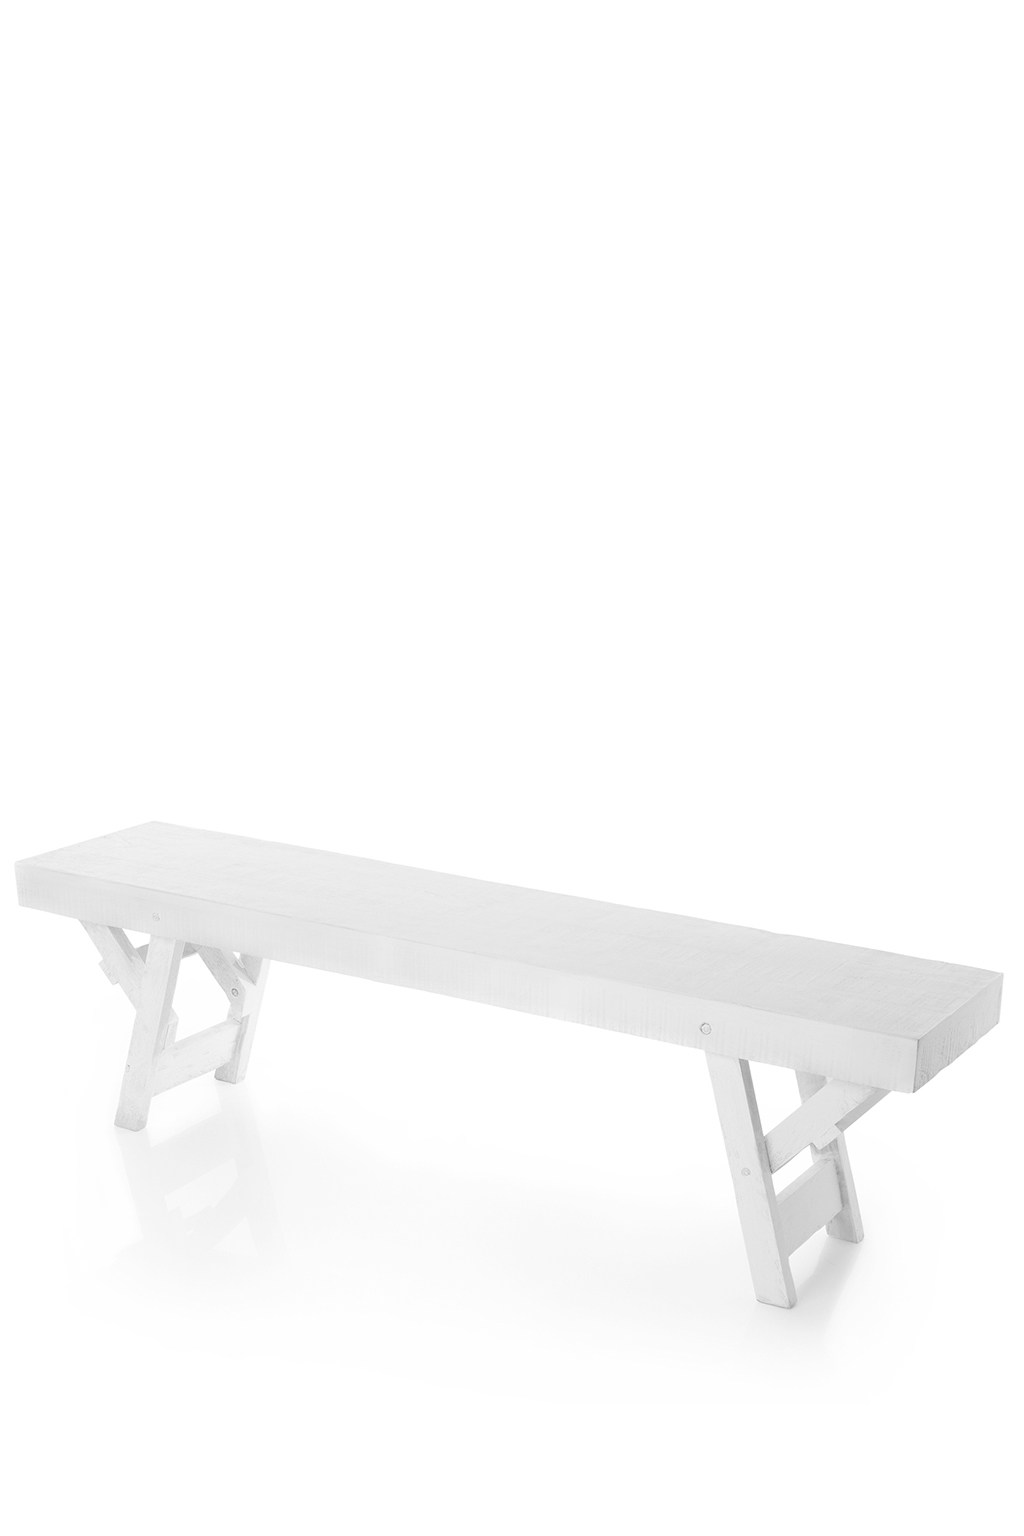 mango wooden bench  furniture  french connection - mango wooden bench loading images